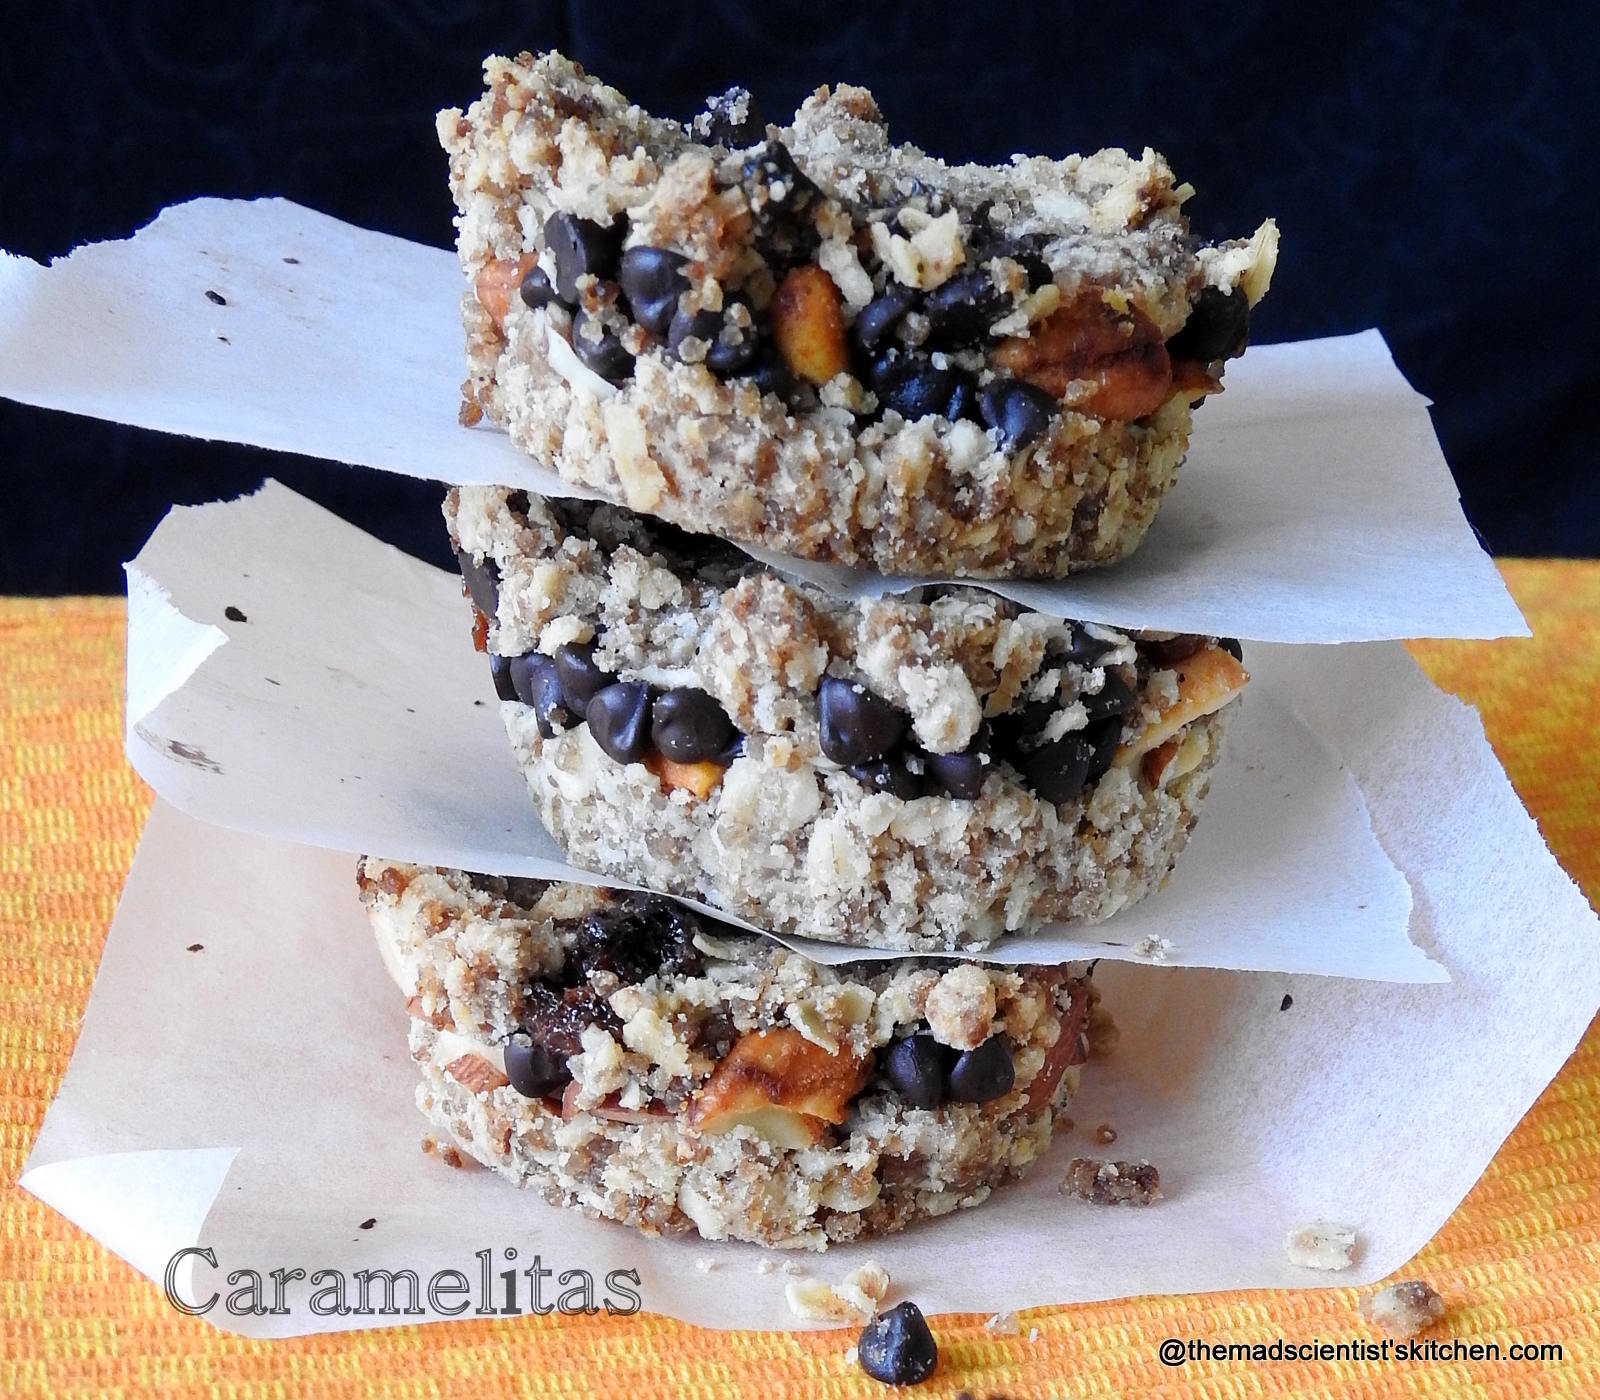 Oats, Nuts,Chocolate and Dulce de leche